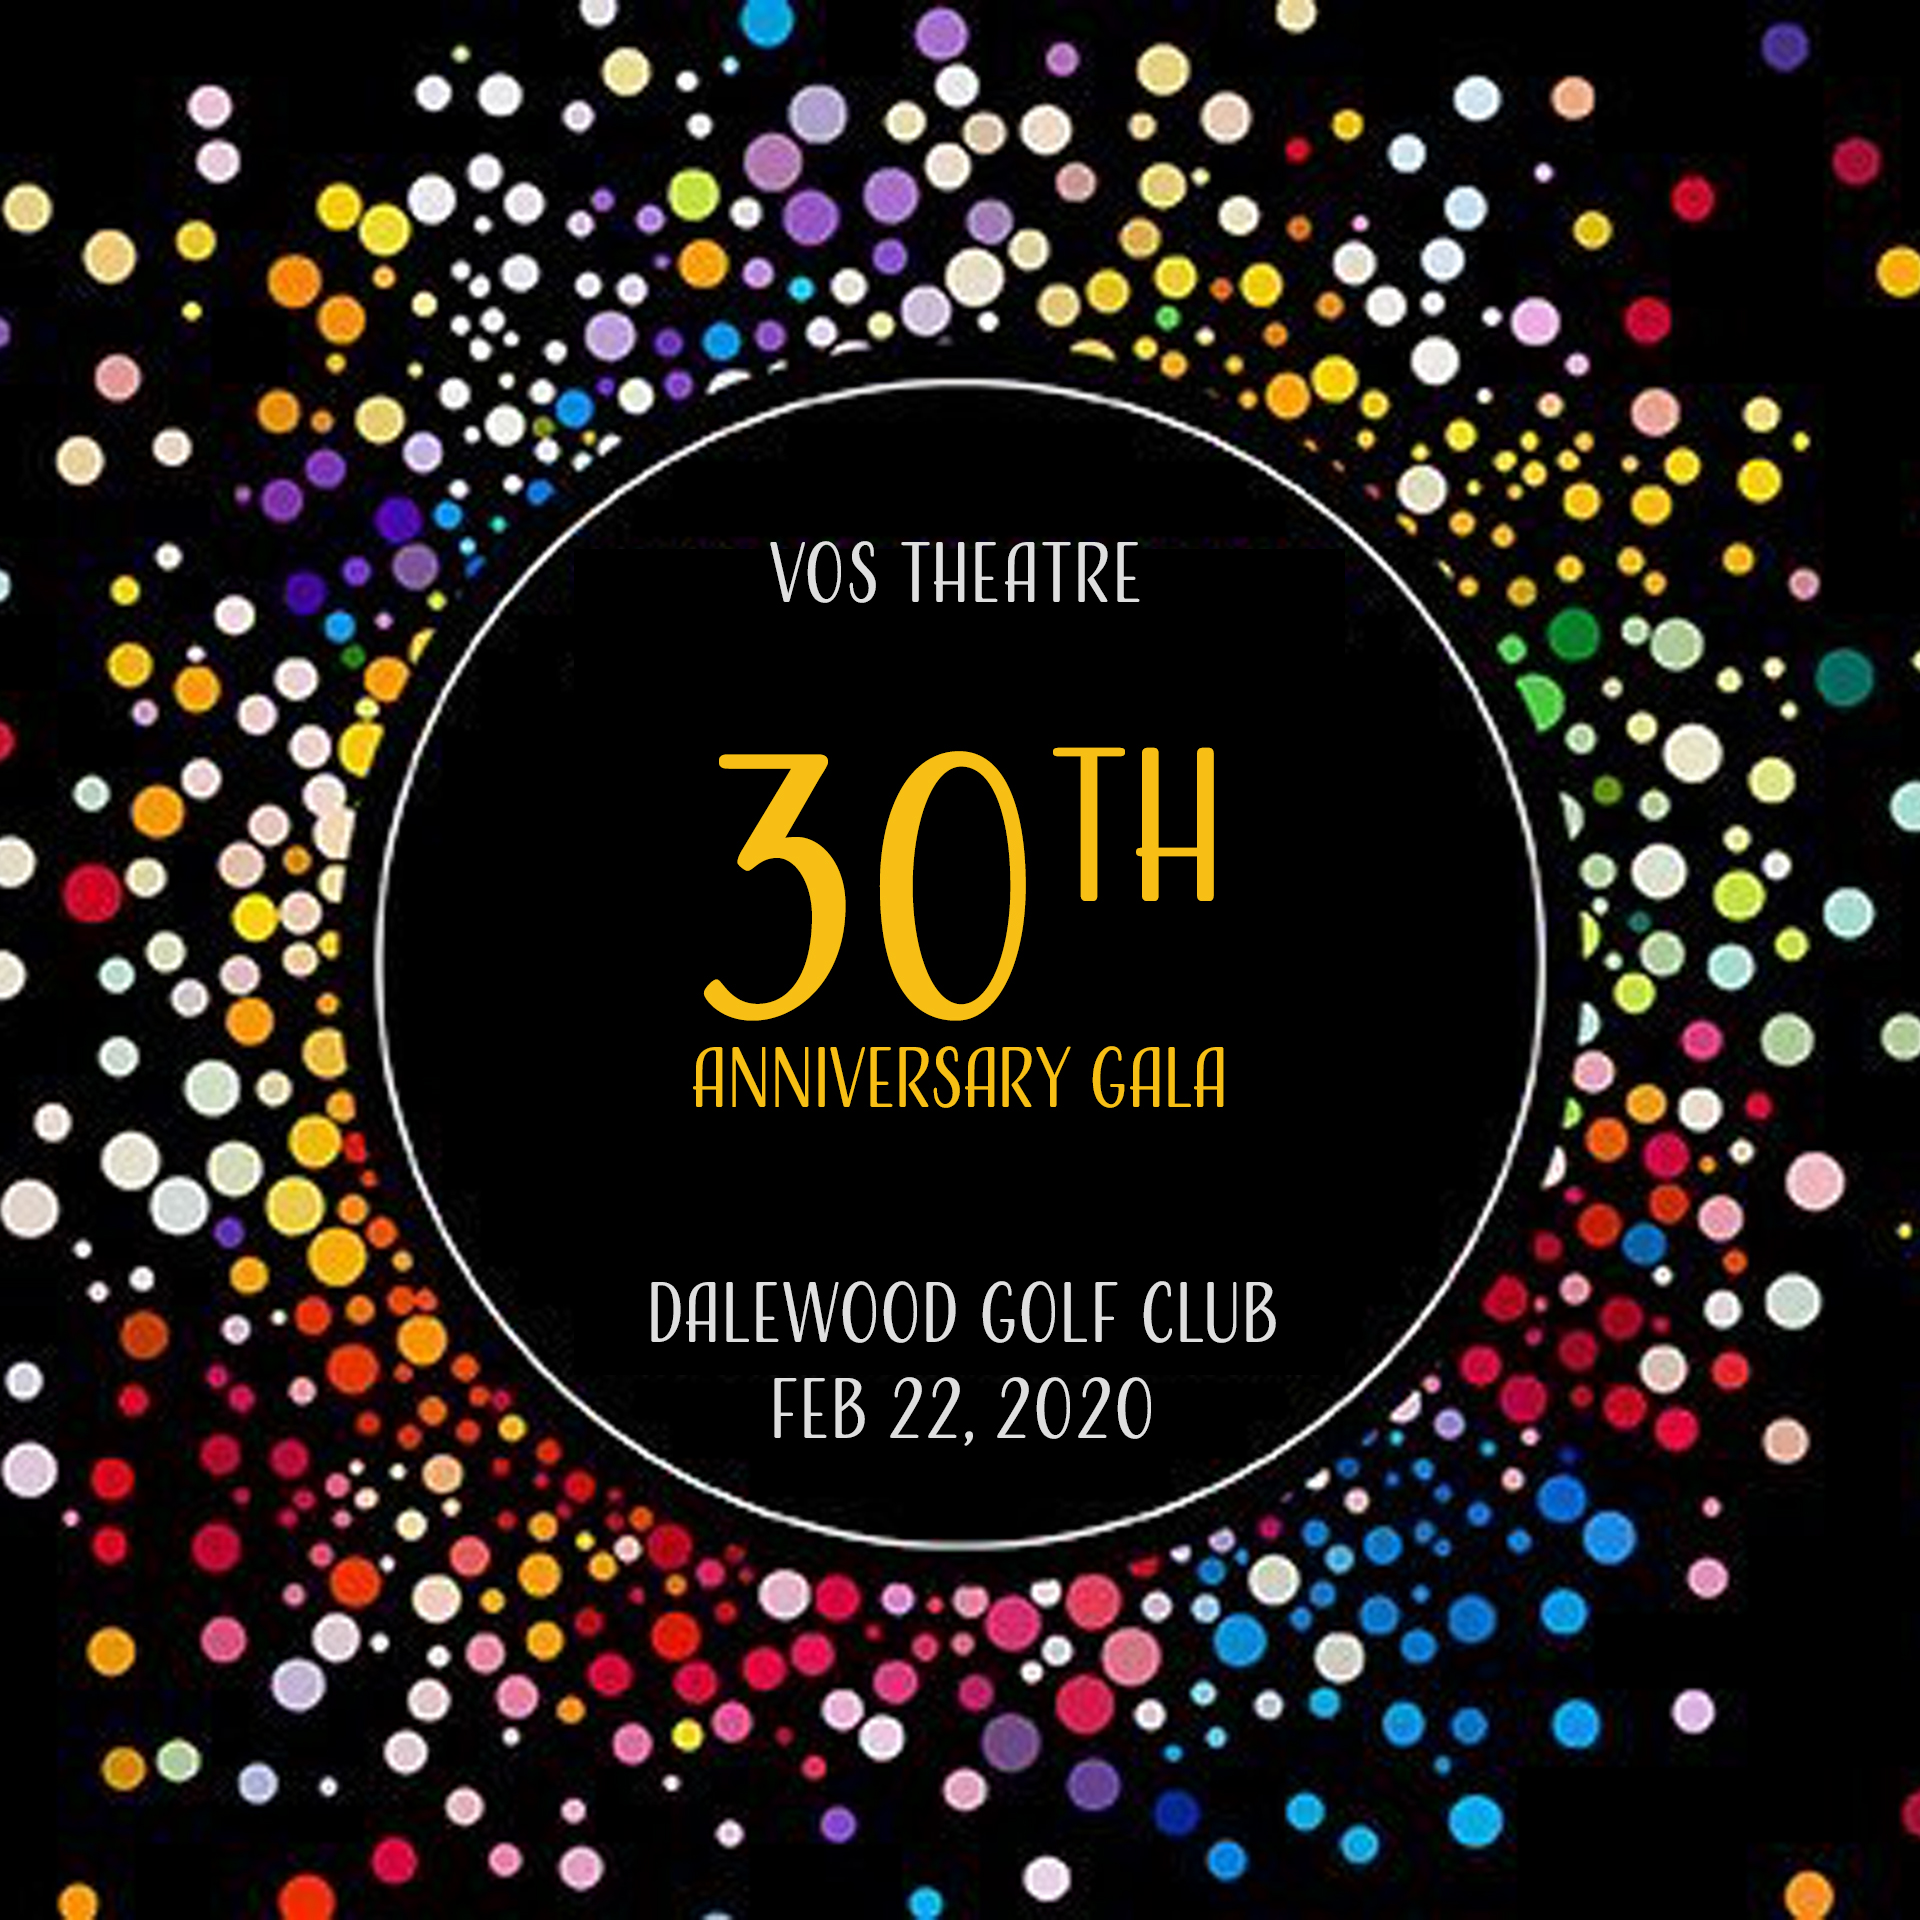 VOS Theatre 30th Anniversary Gala